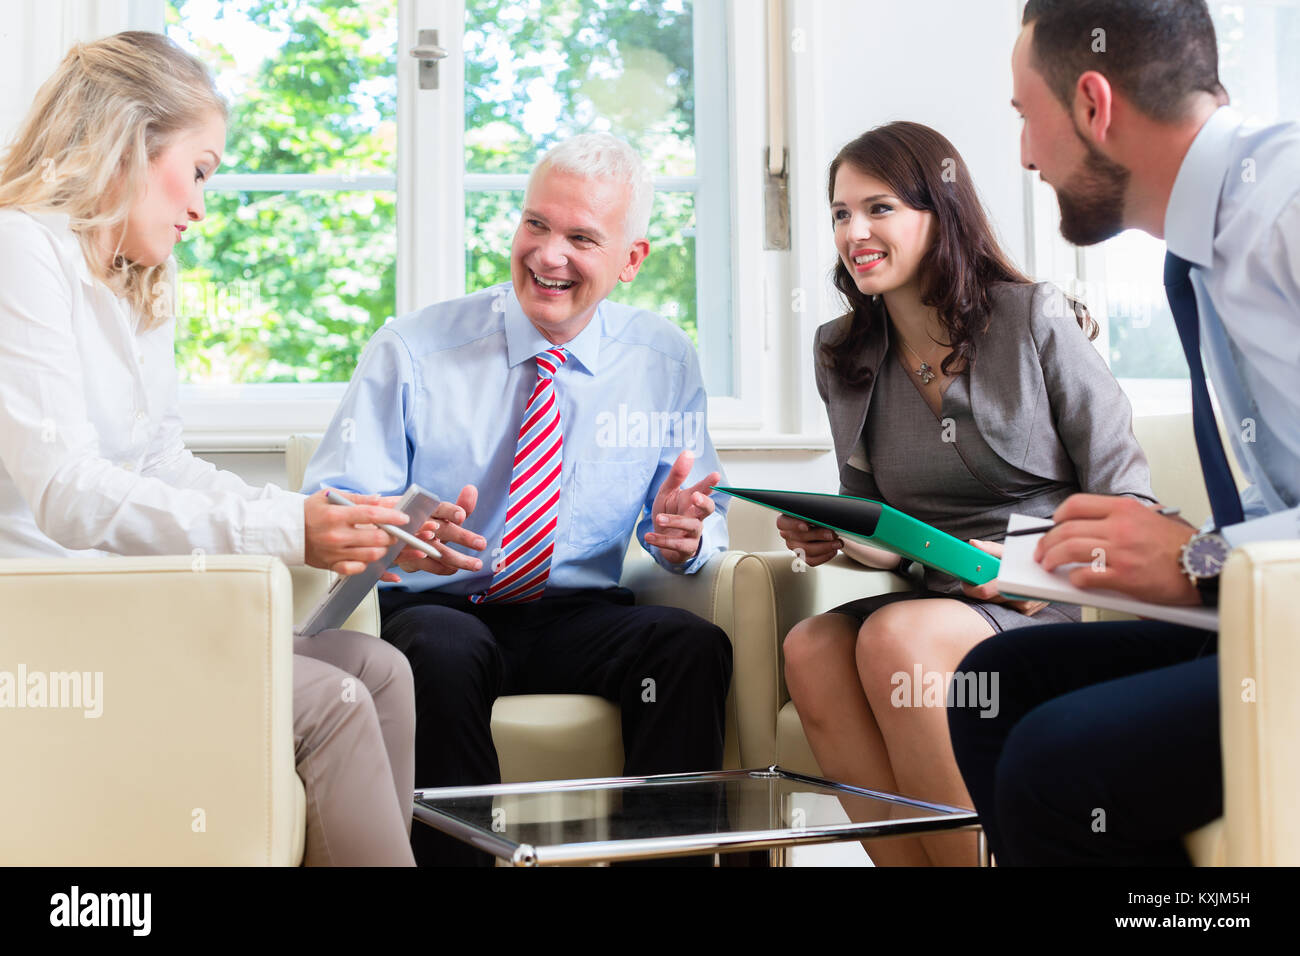 Businesspeople having discussion in office - Stock Image